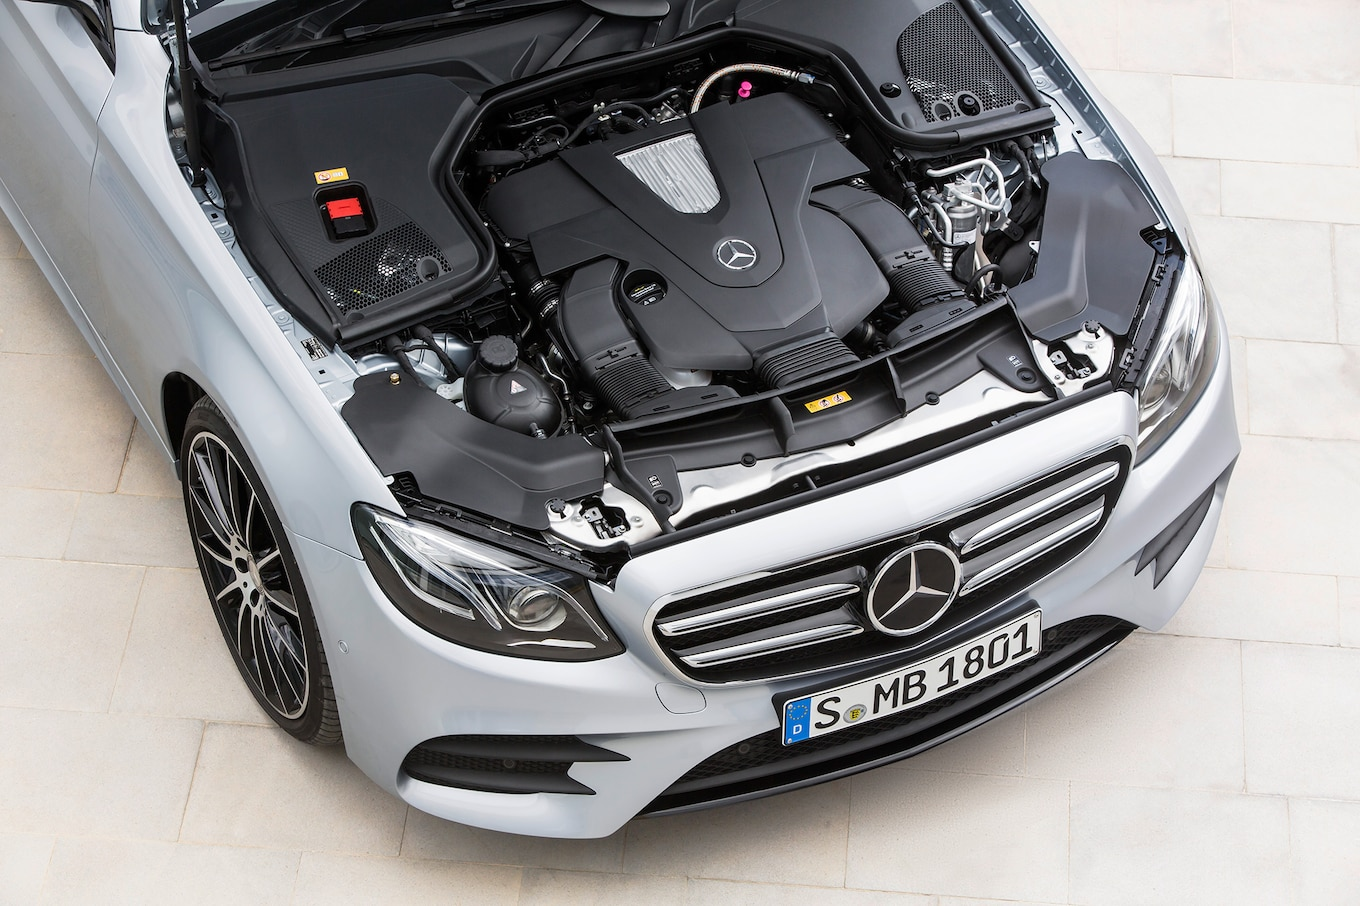 hight resolution of 2017 mercedes benz e400 4matic wagon engine elly september 12 2016